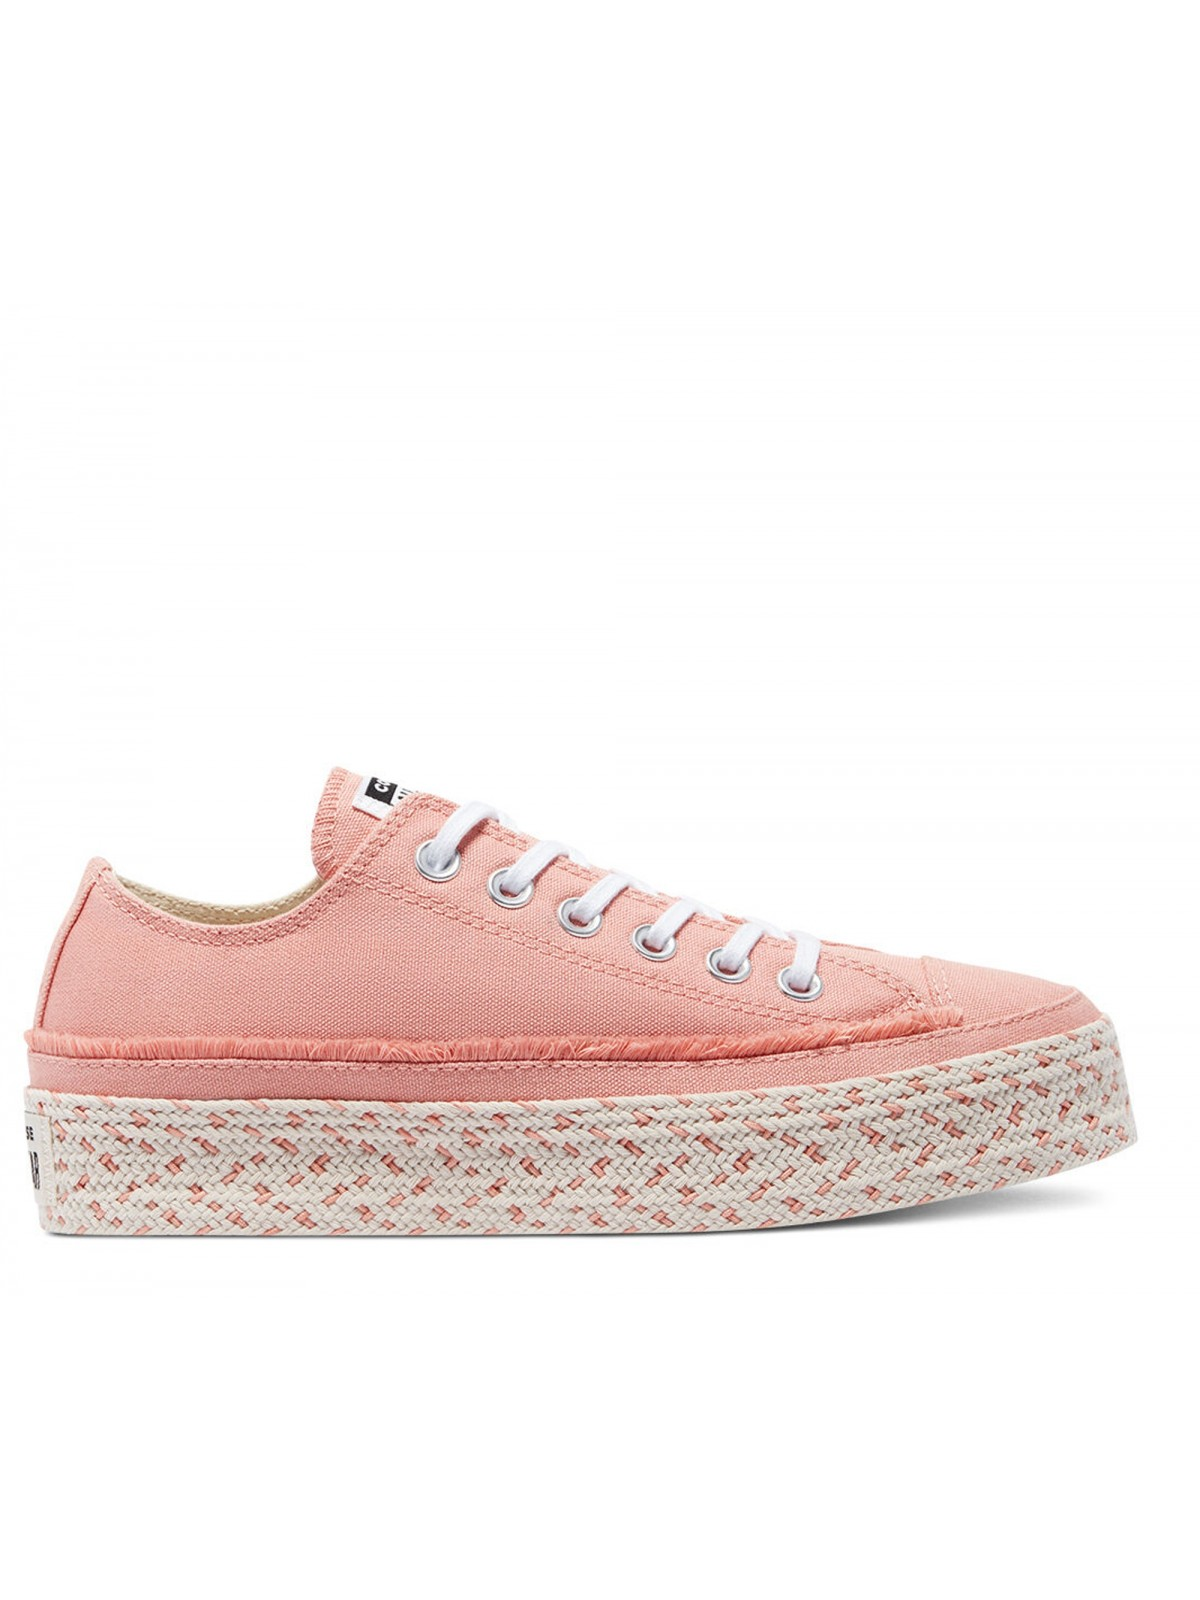 Converse Chuck Taylor all star Espadrille plateforme pink